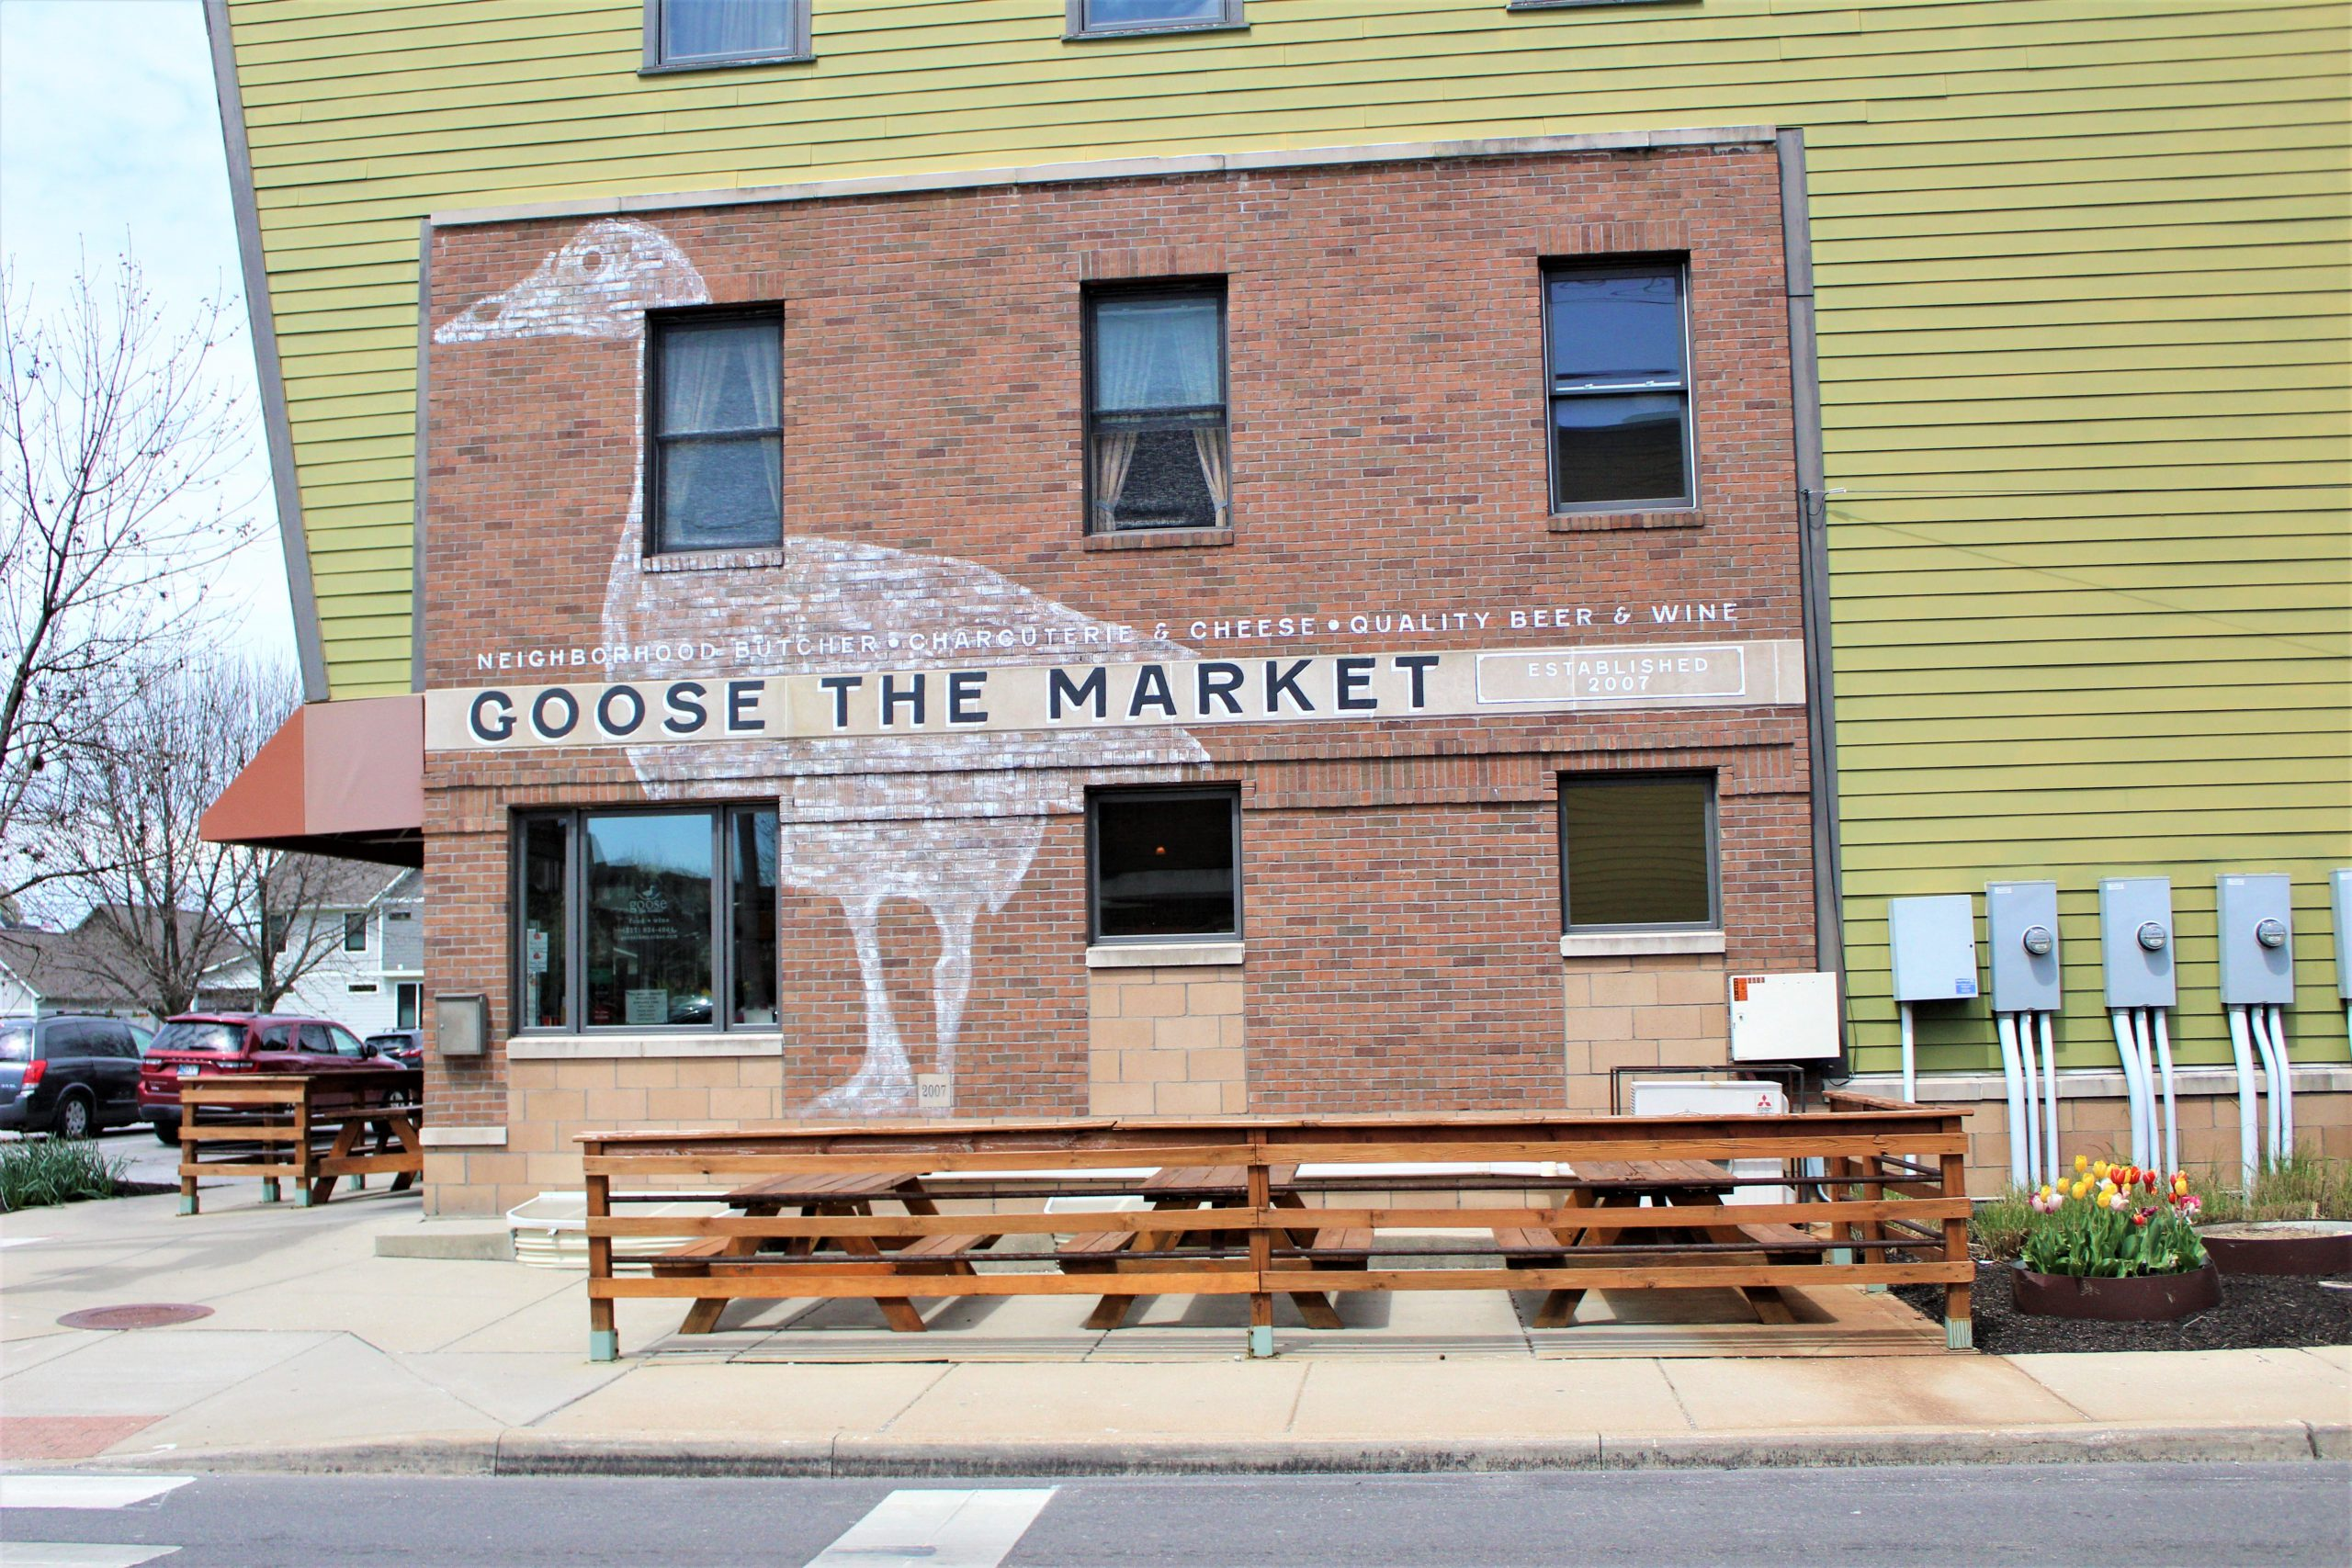 Fall Creek Place - Goose The Market